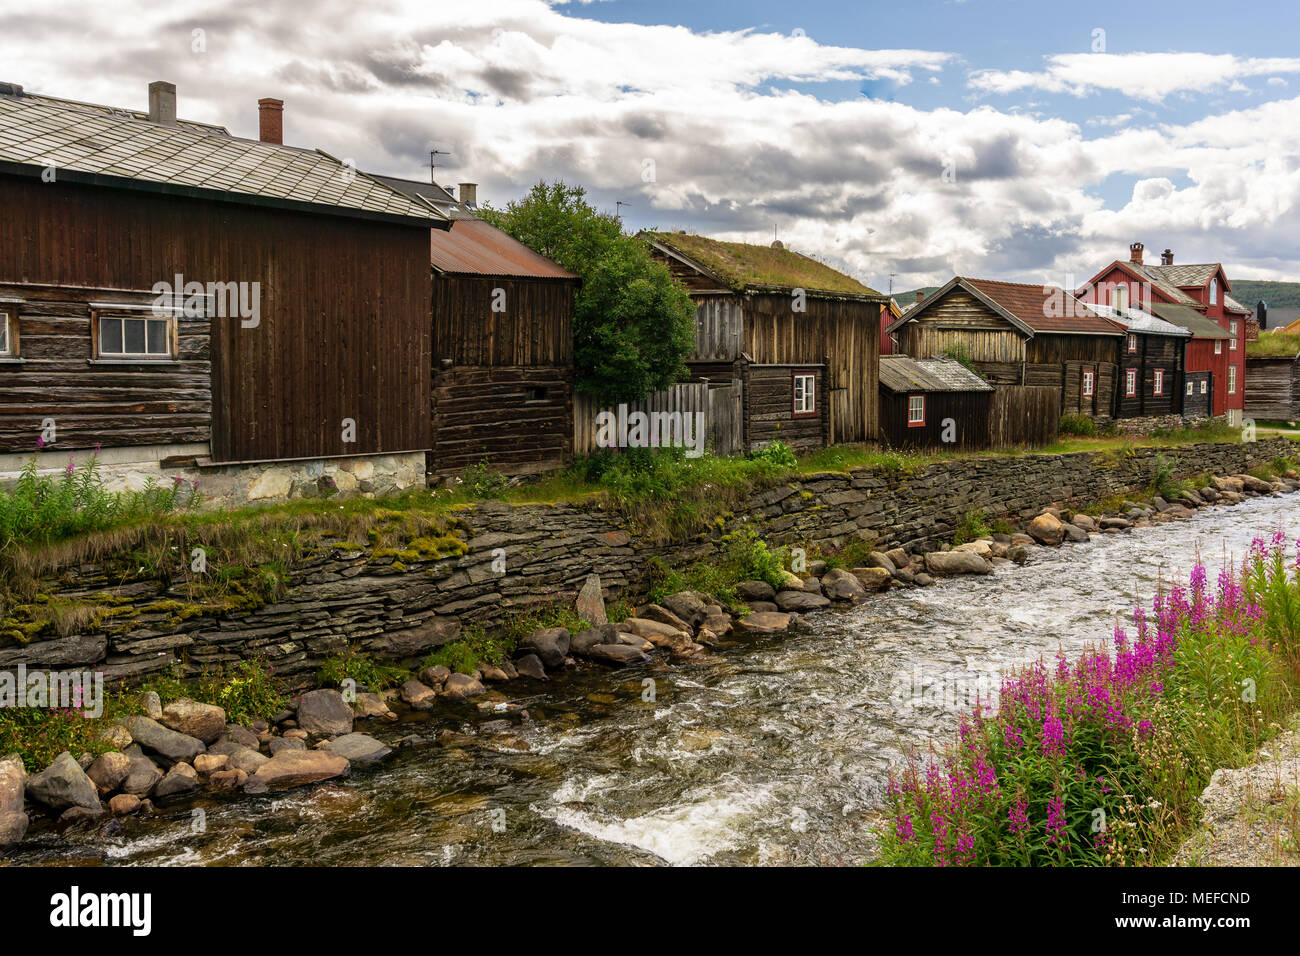 Roros an herritage city in North-Norway Unesco world heritage list houses at river - Stock Image